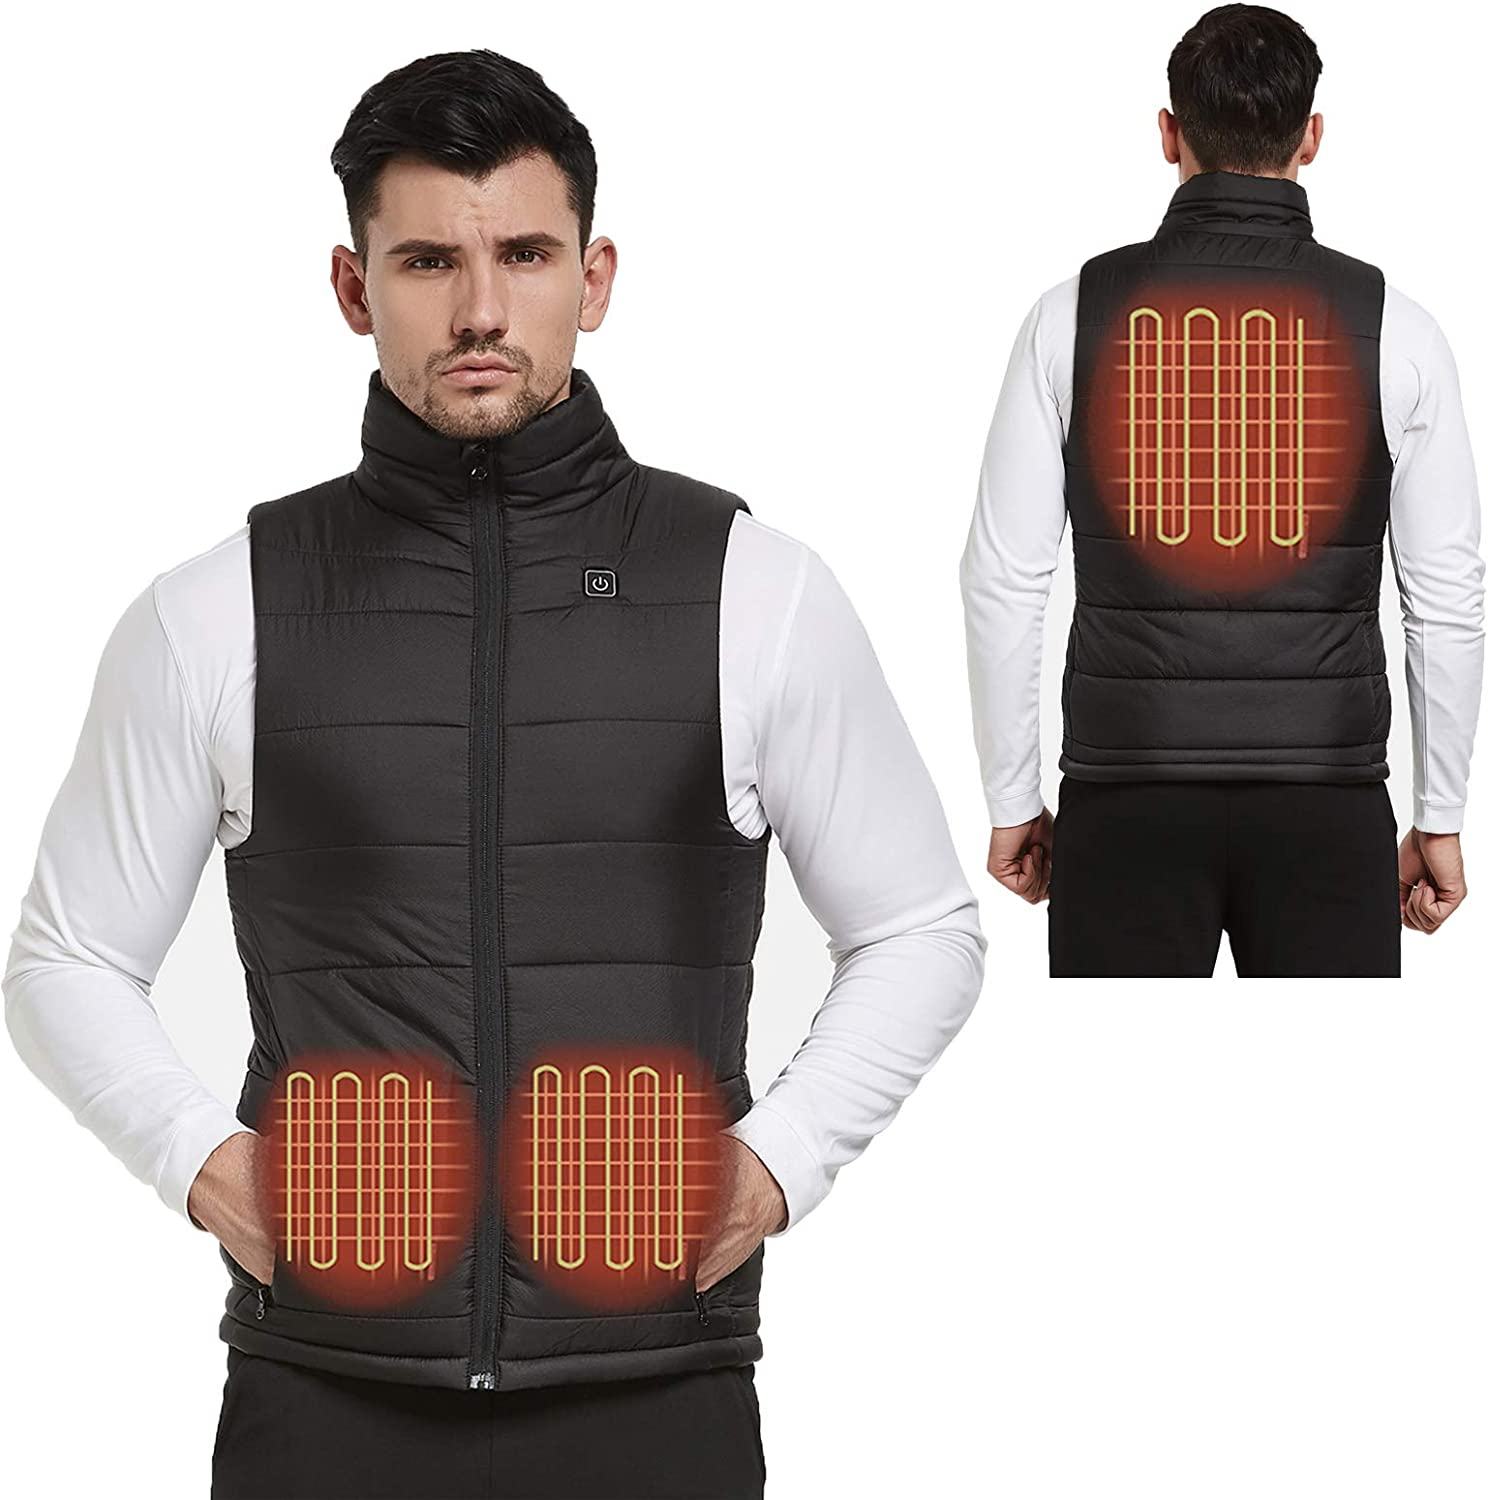 Lightweight Heated Vest for Men with 7.4V Battery Pack Adjustable Electric Warm Hunting Jacket